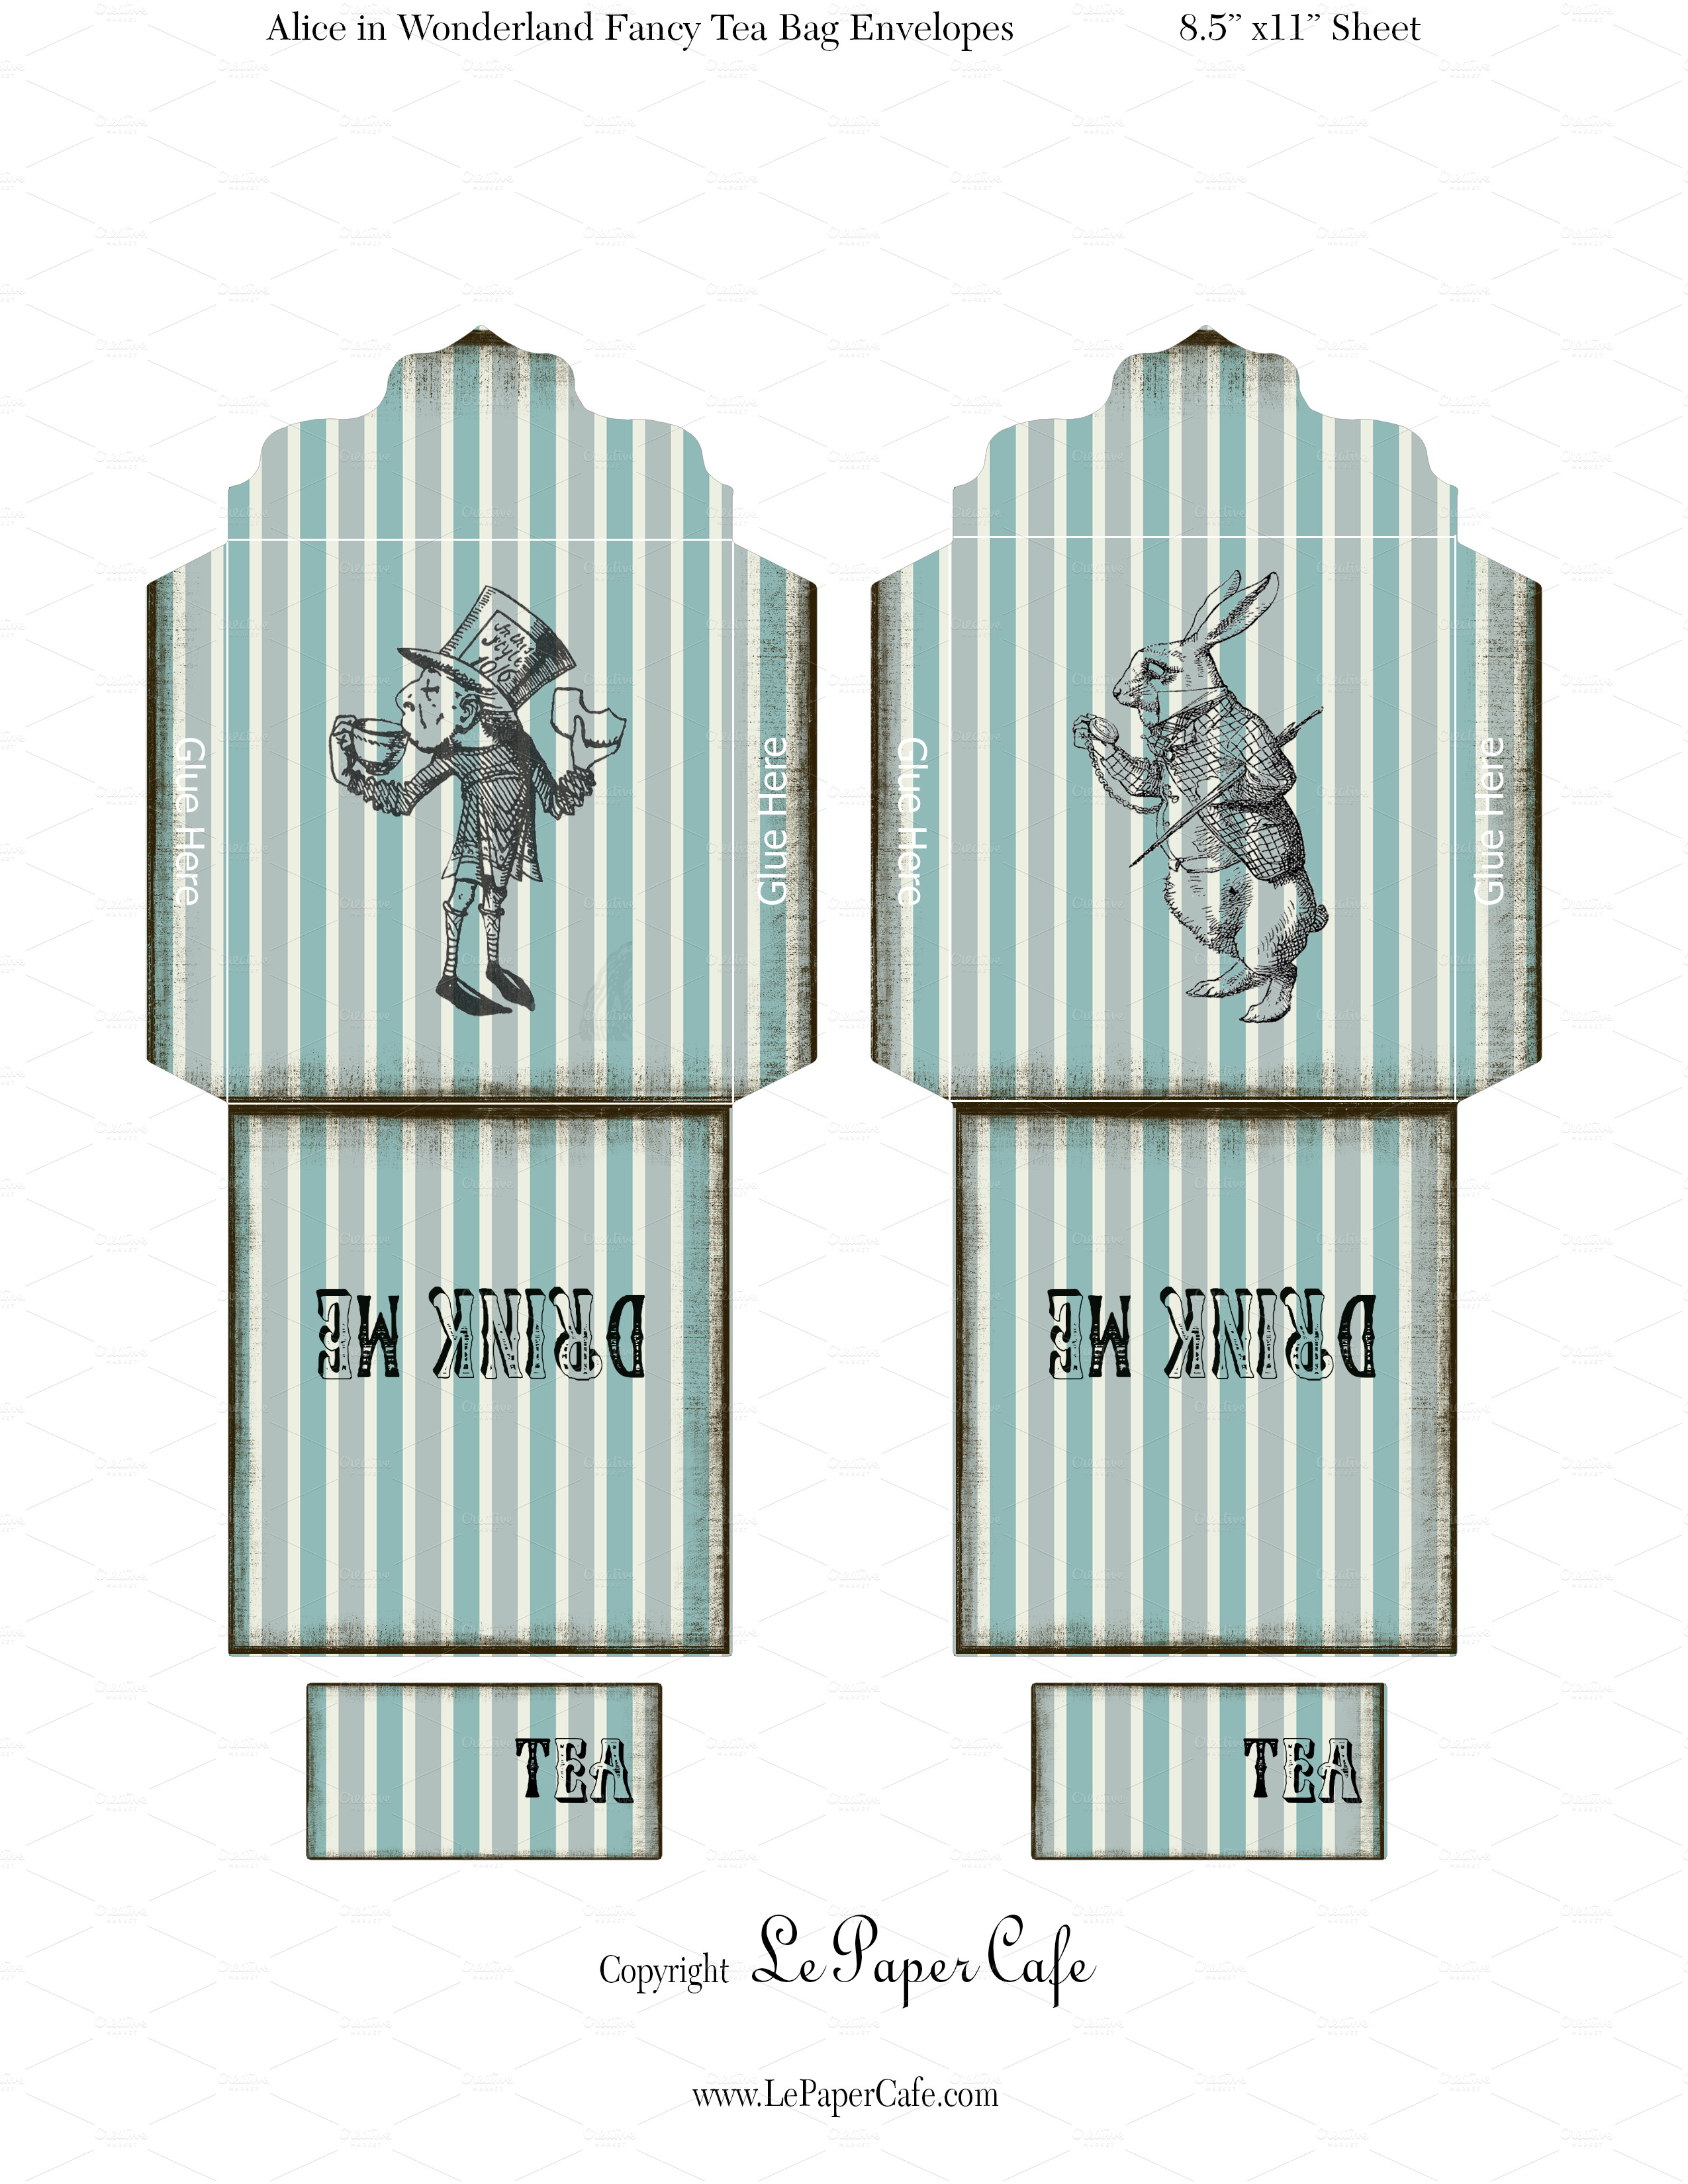 alice in wonderland tags template - alice in wonderland tea bags objects on creative market